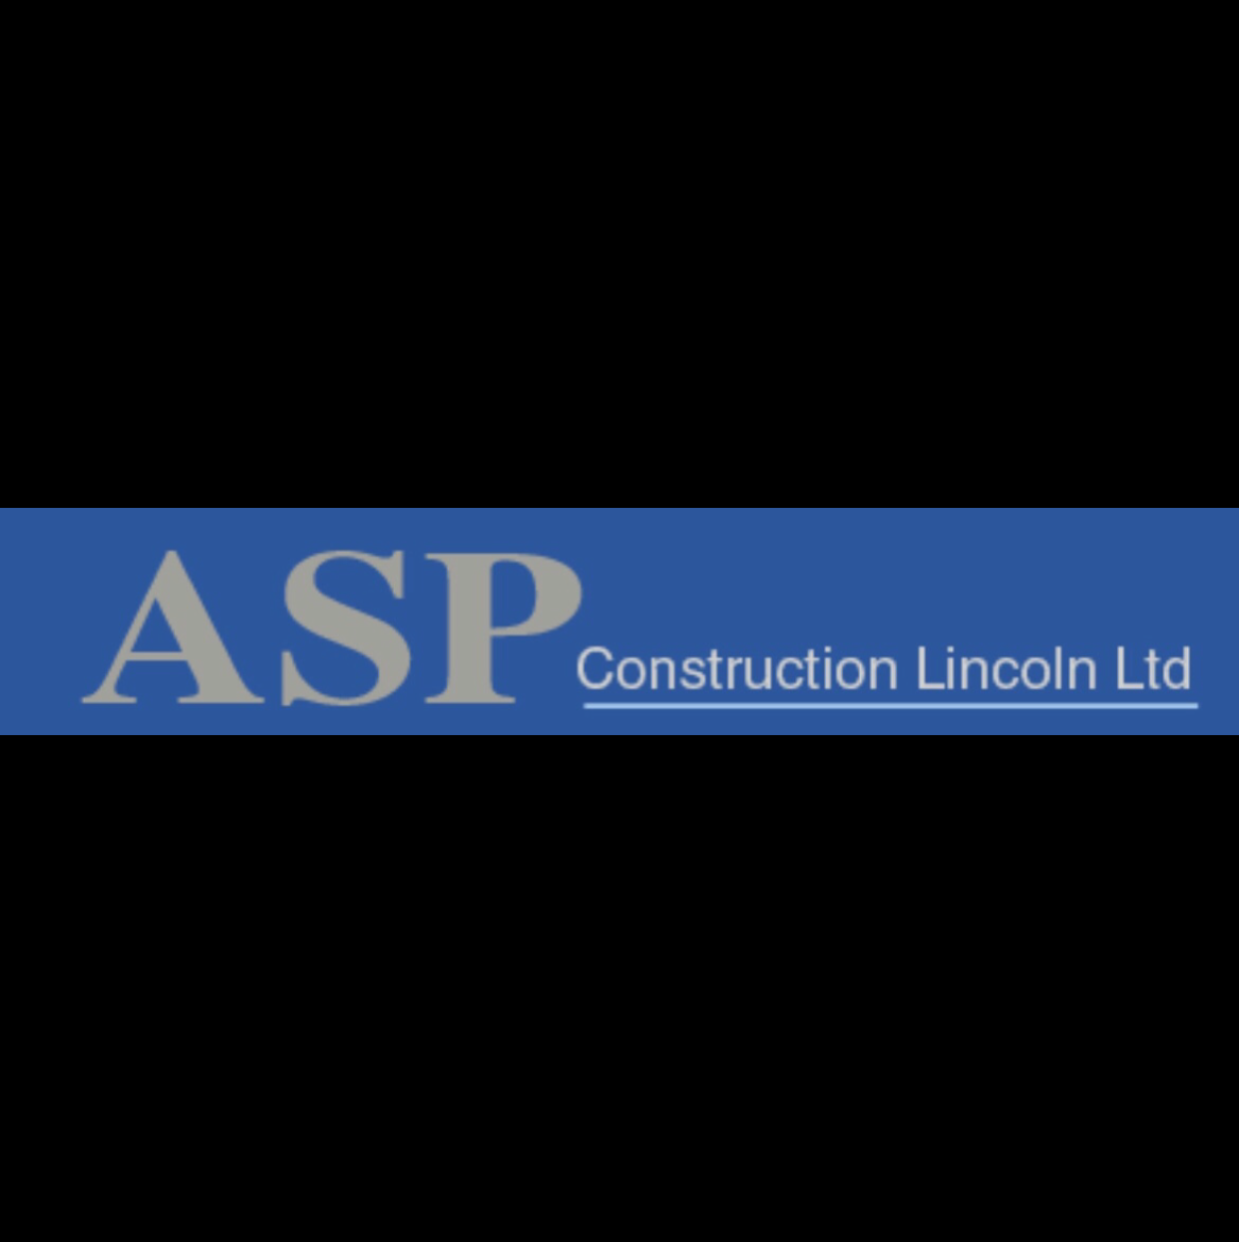 ASP Construction Lincoln Ltd